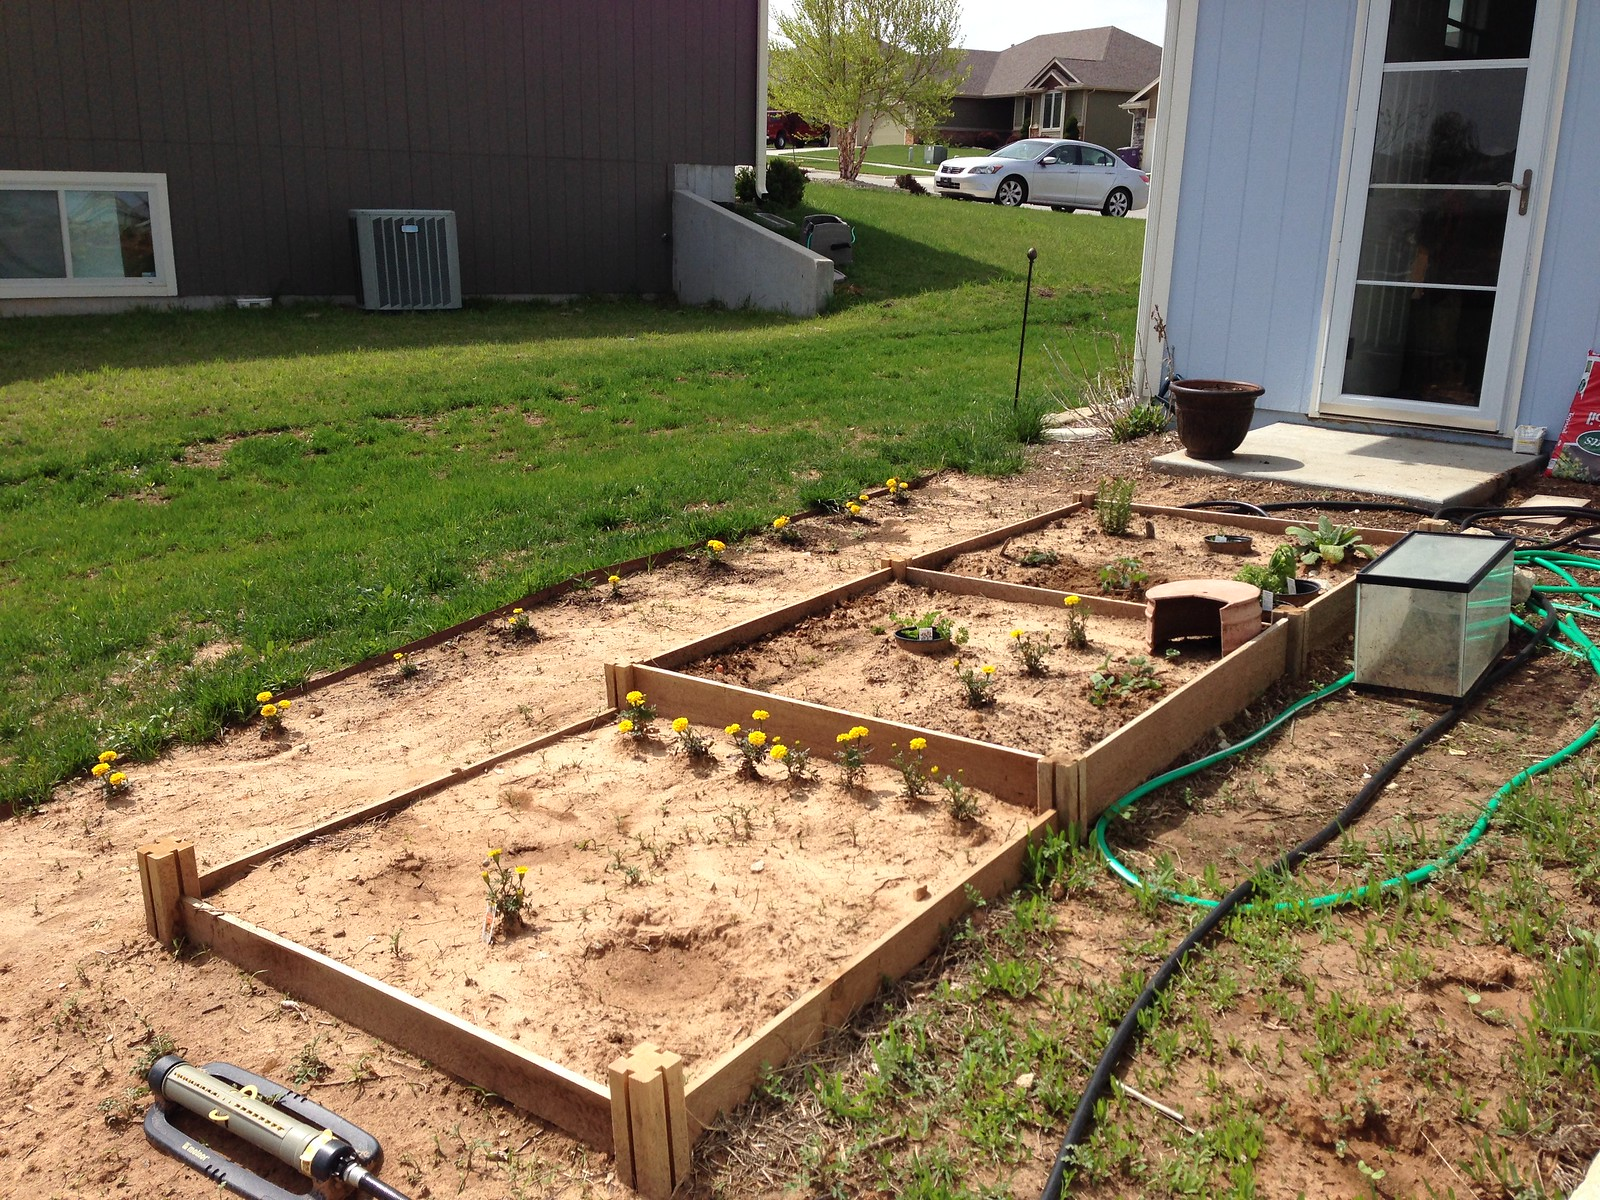 2015-04-27 backyard and kitchen garden